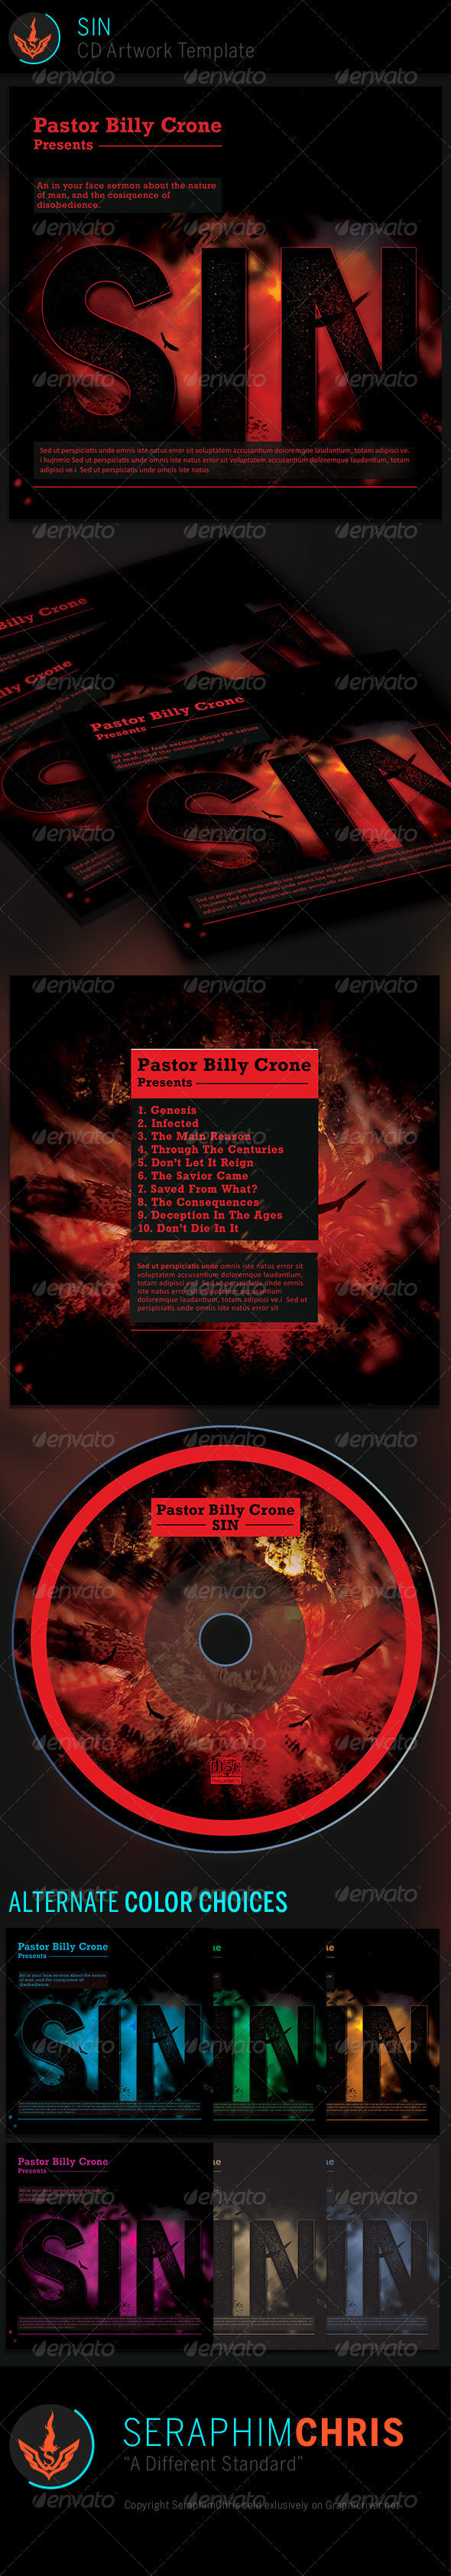 SIN: CD Artwork Template - CD & DVD Artwork Print Templates